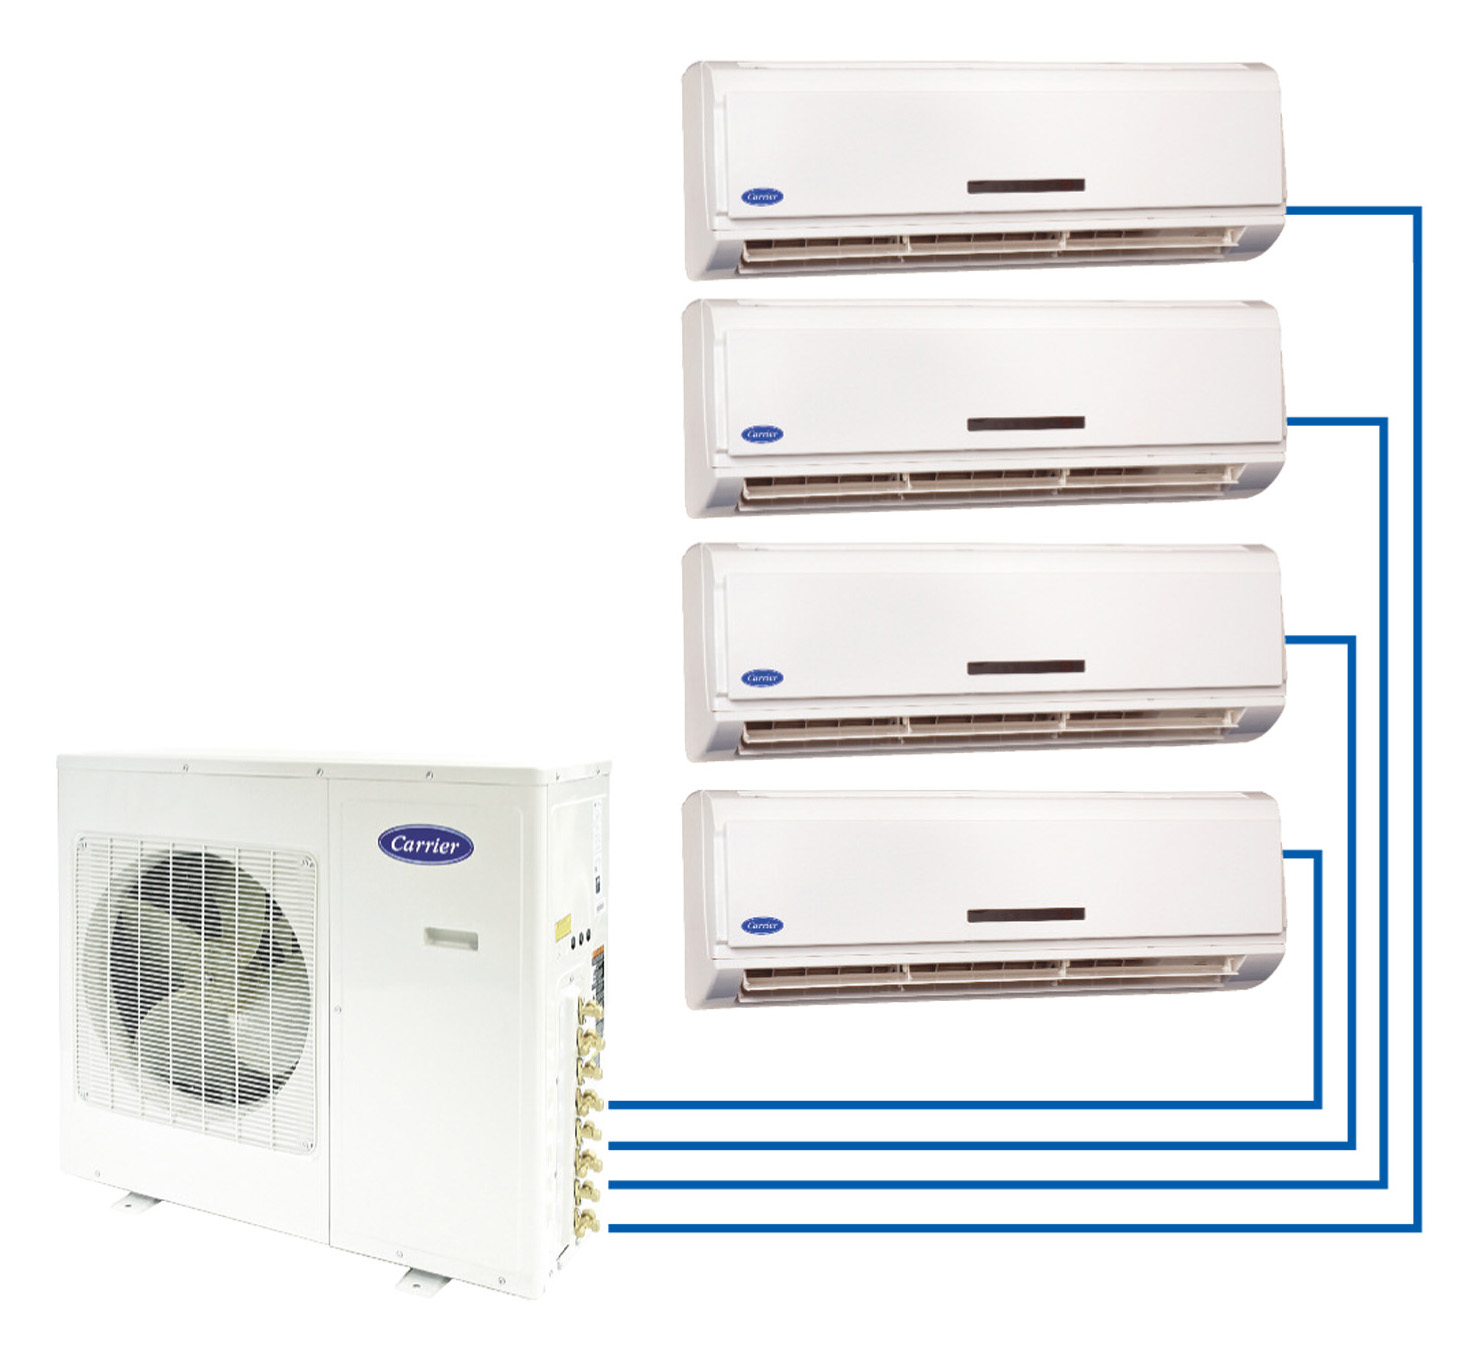 Carrier Toshiba Ductless Systems